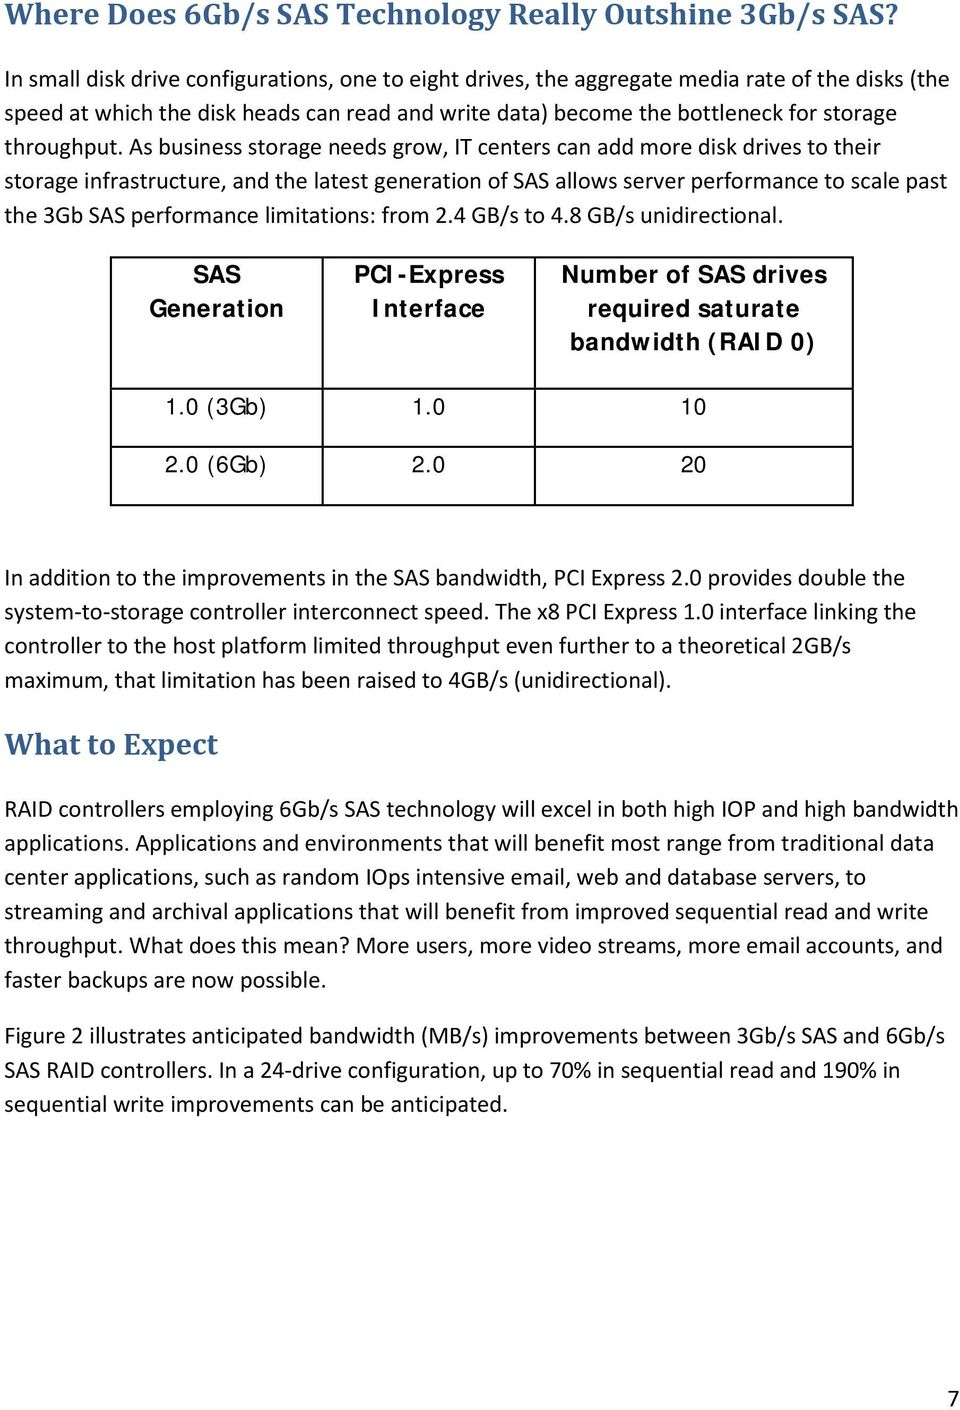 As business storage needs grow, IT centers can add more disk drives to their storage infrastructure, and the latest generation of SAS allows server performance to scale past the 3Gb SAS performance